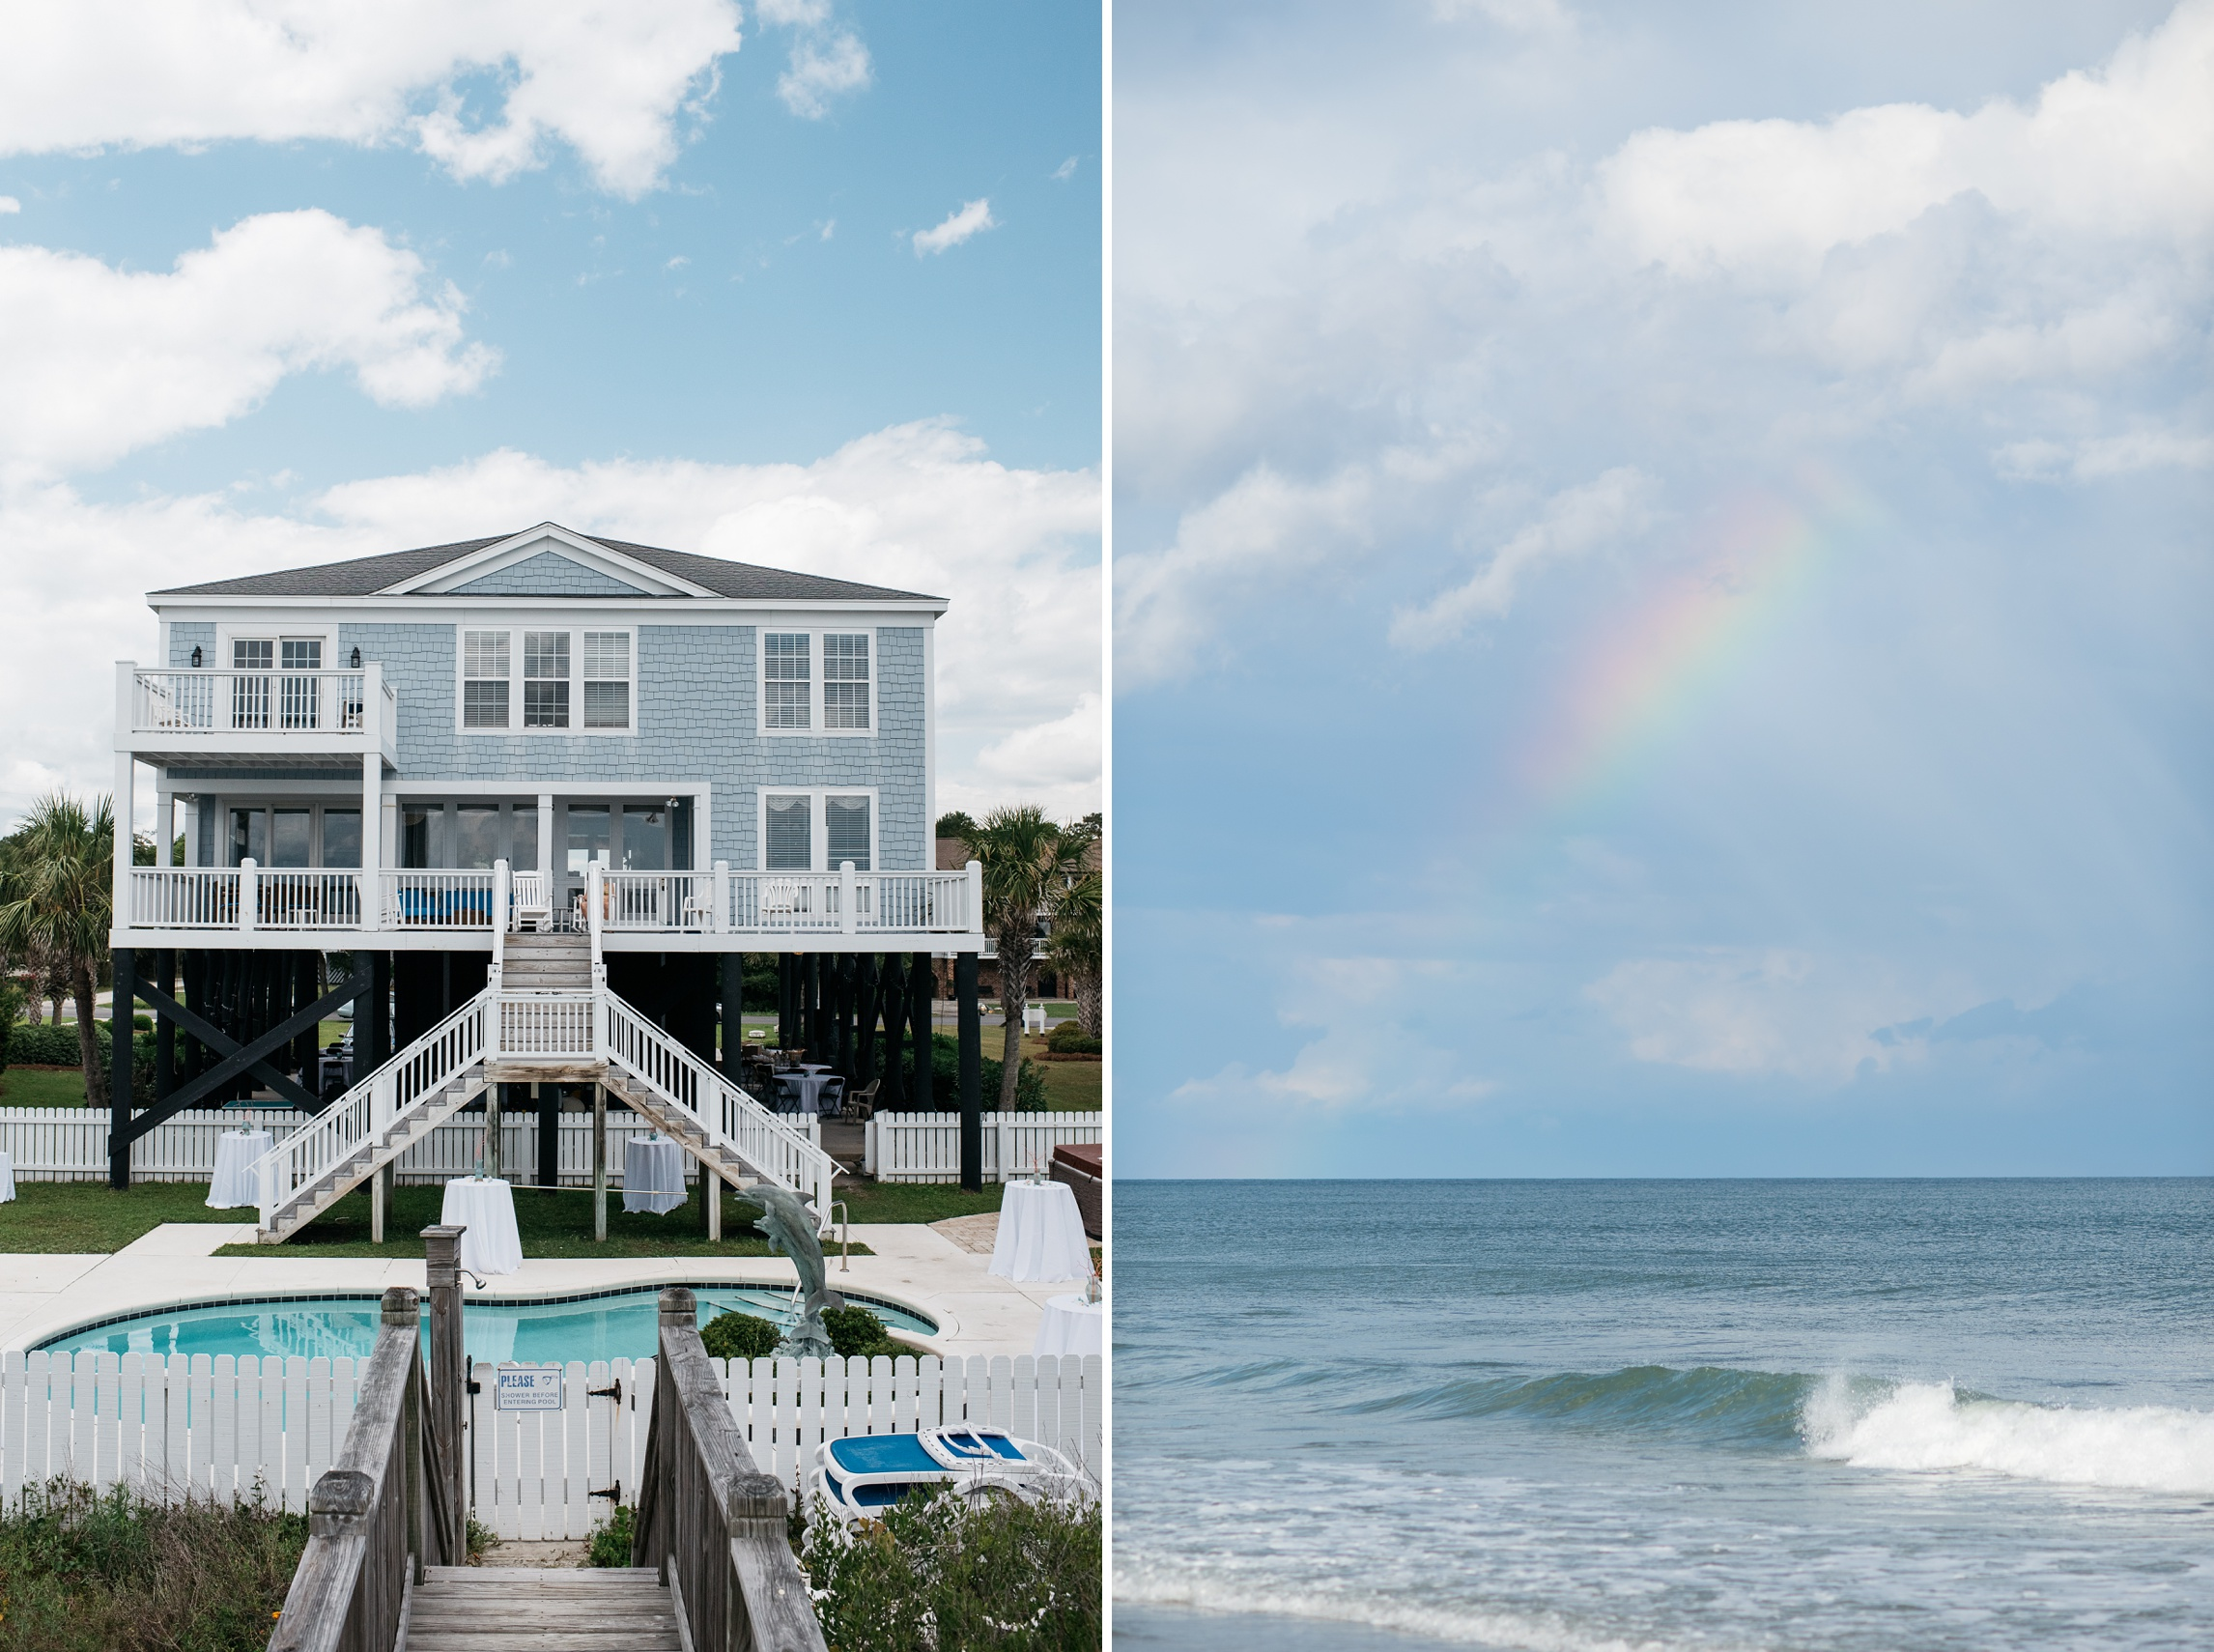 the beautiful beach house (mansion) that served as the wedding venue on Myrtle Beach, and the rainbow that arched over the ceremony - photography by Sonja Salzburg of Sonja K Photography.